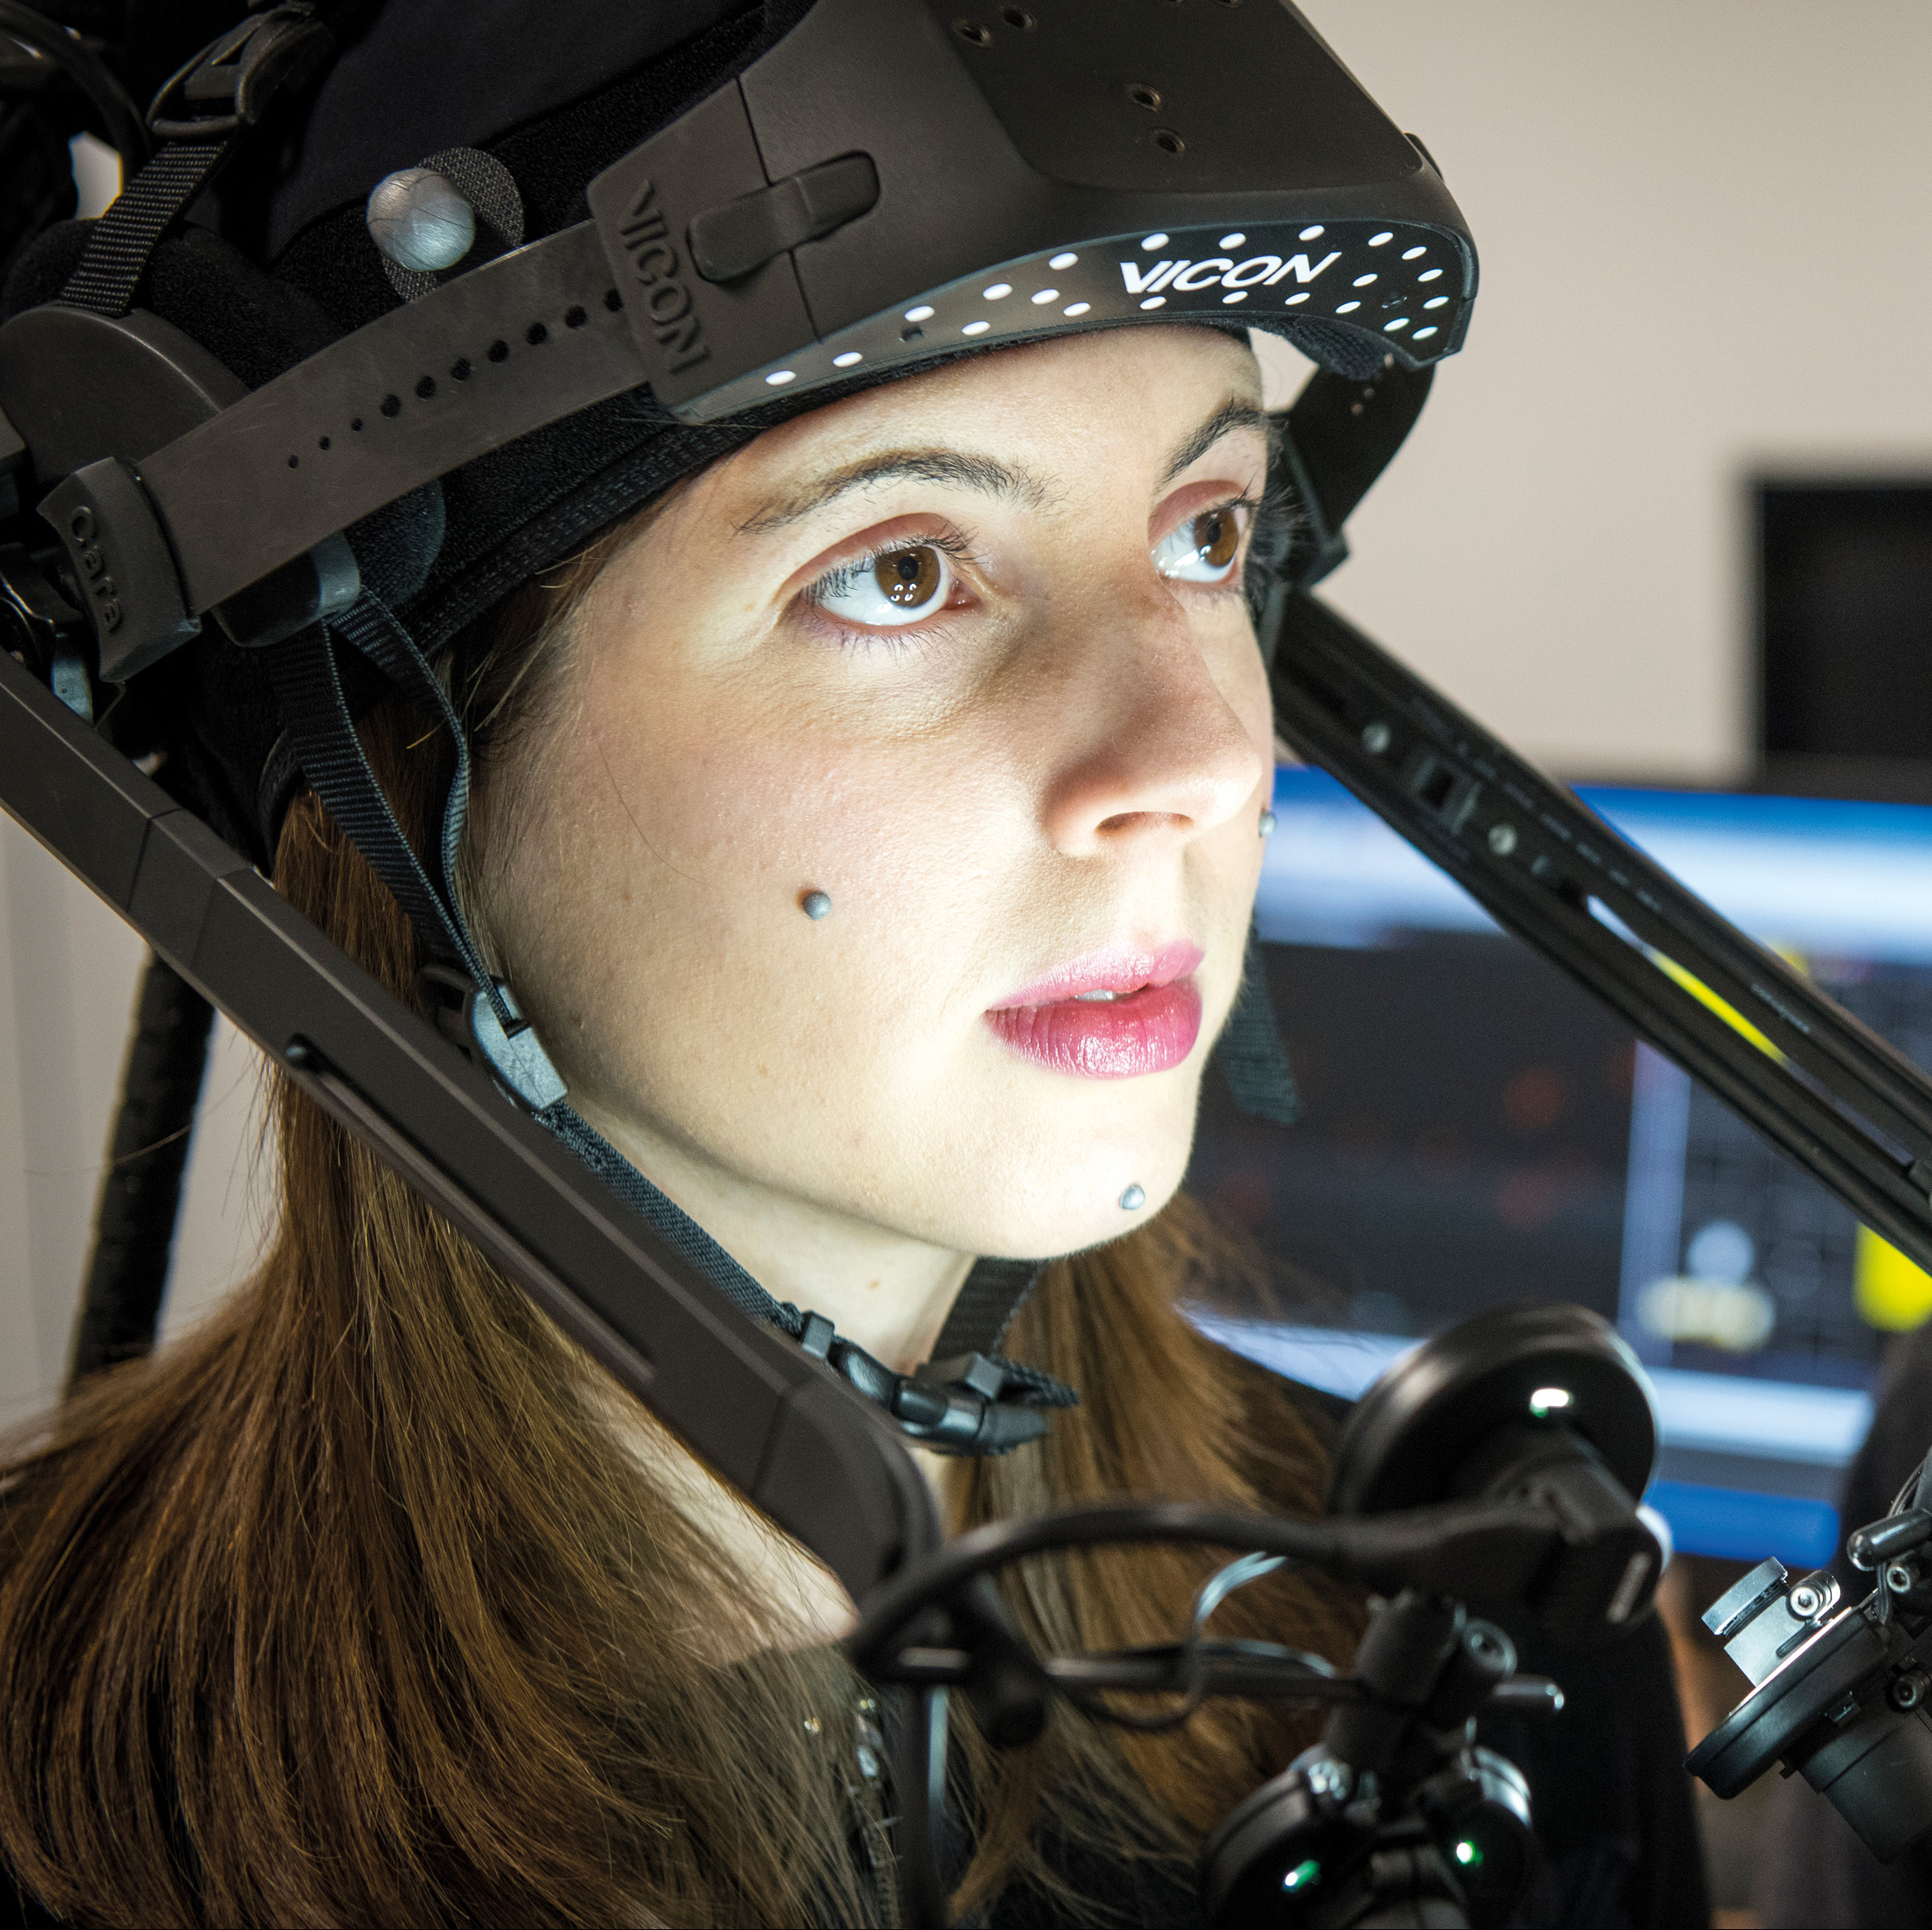 Researchers using motion capture equipment